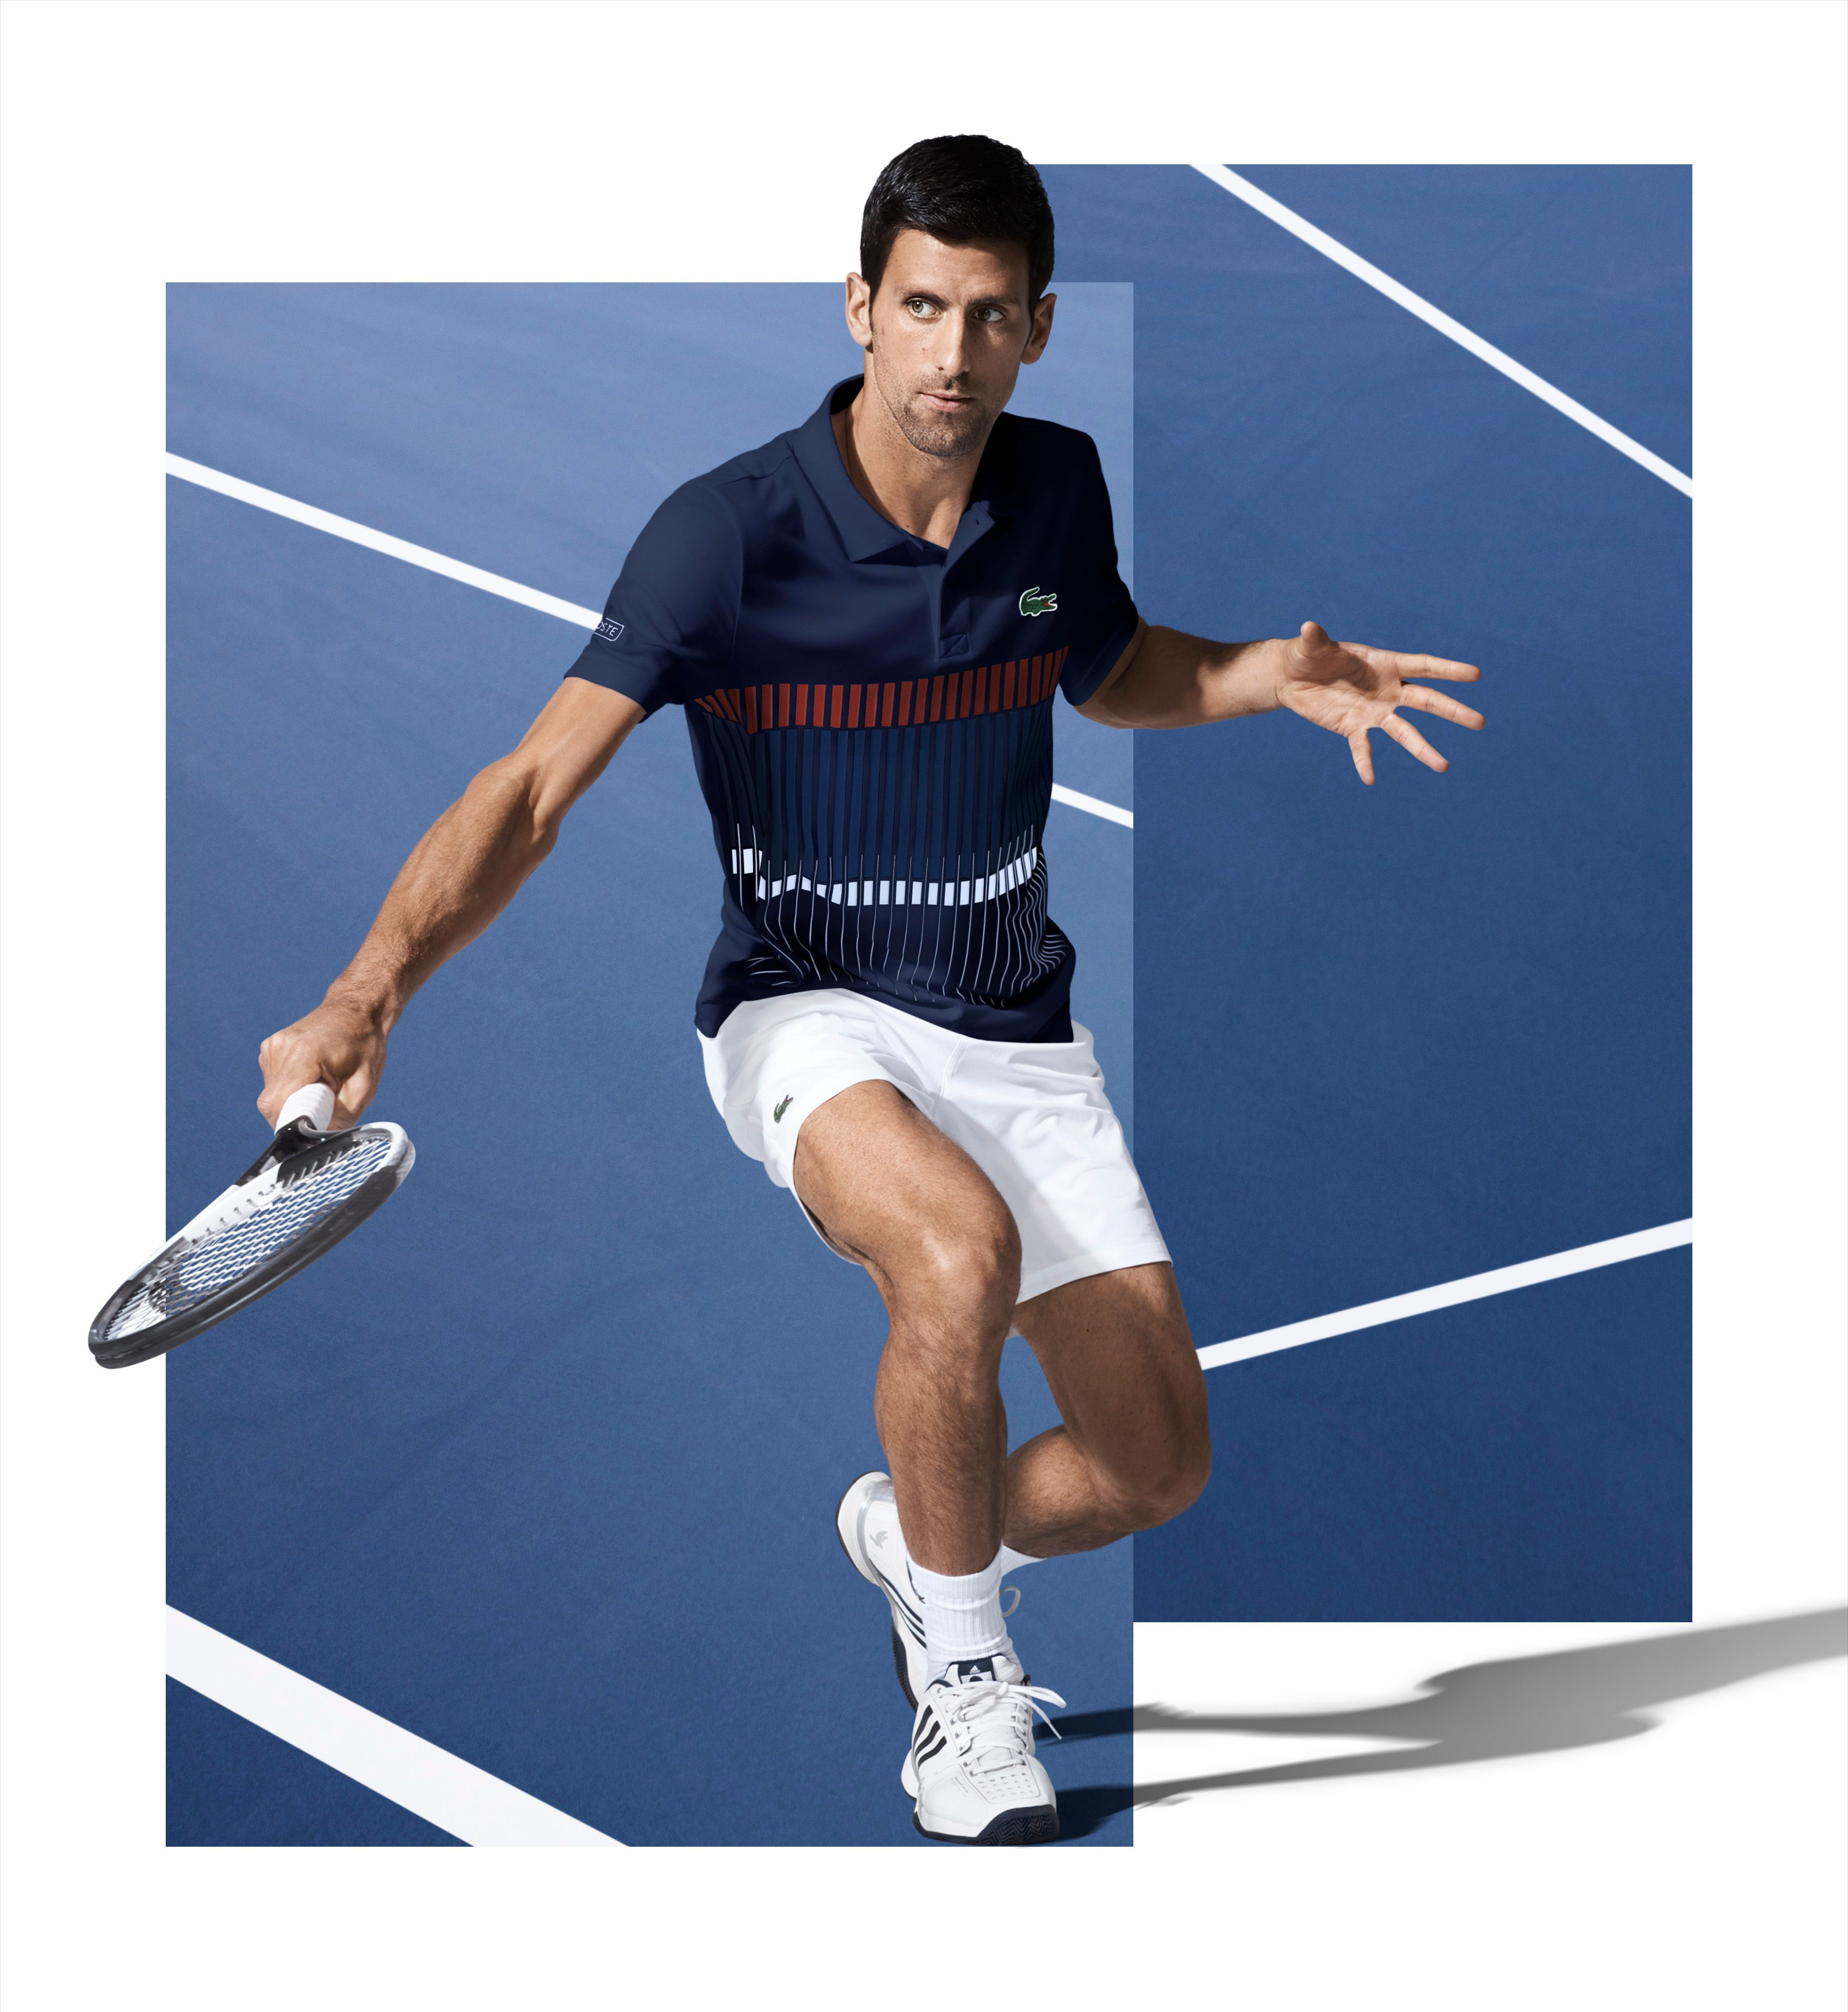 006_LACOSTE_NOVAK_DJOKOVIC_COLLECTION_NAVY_EDITION_ATP_WOLRD TOUR_FINALS